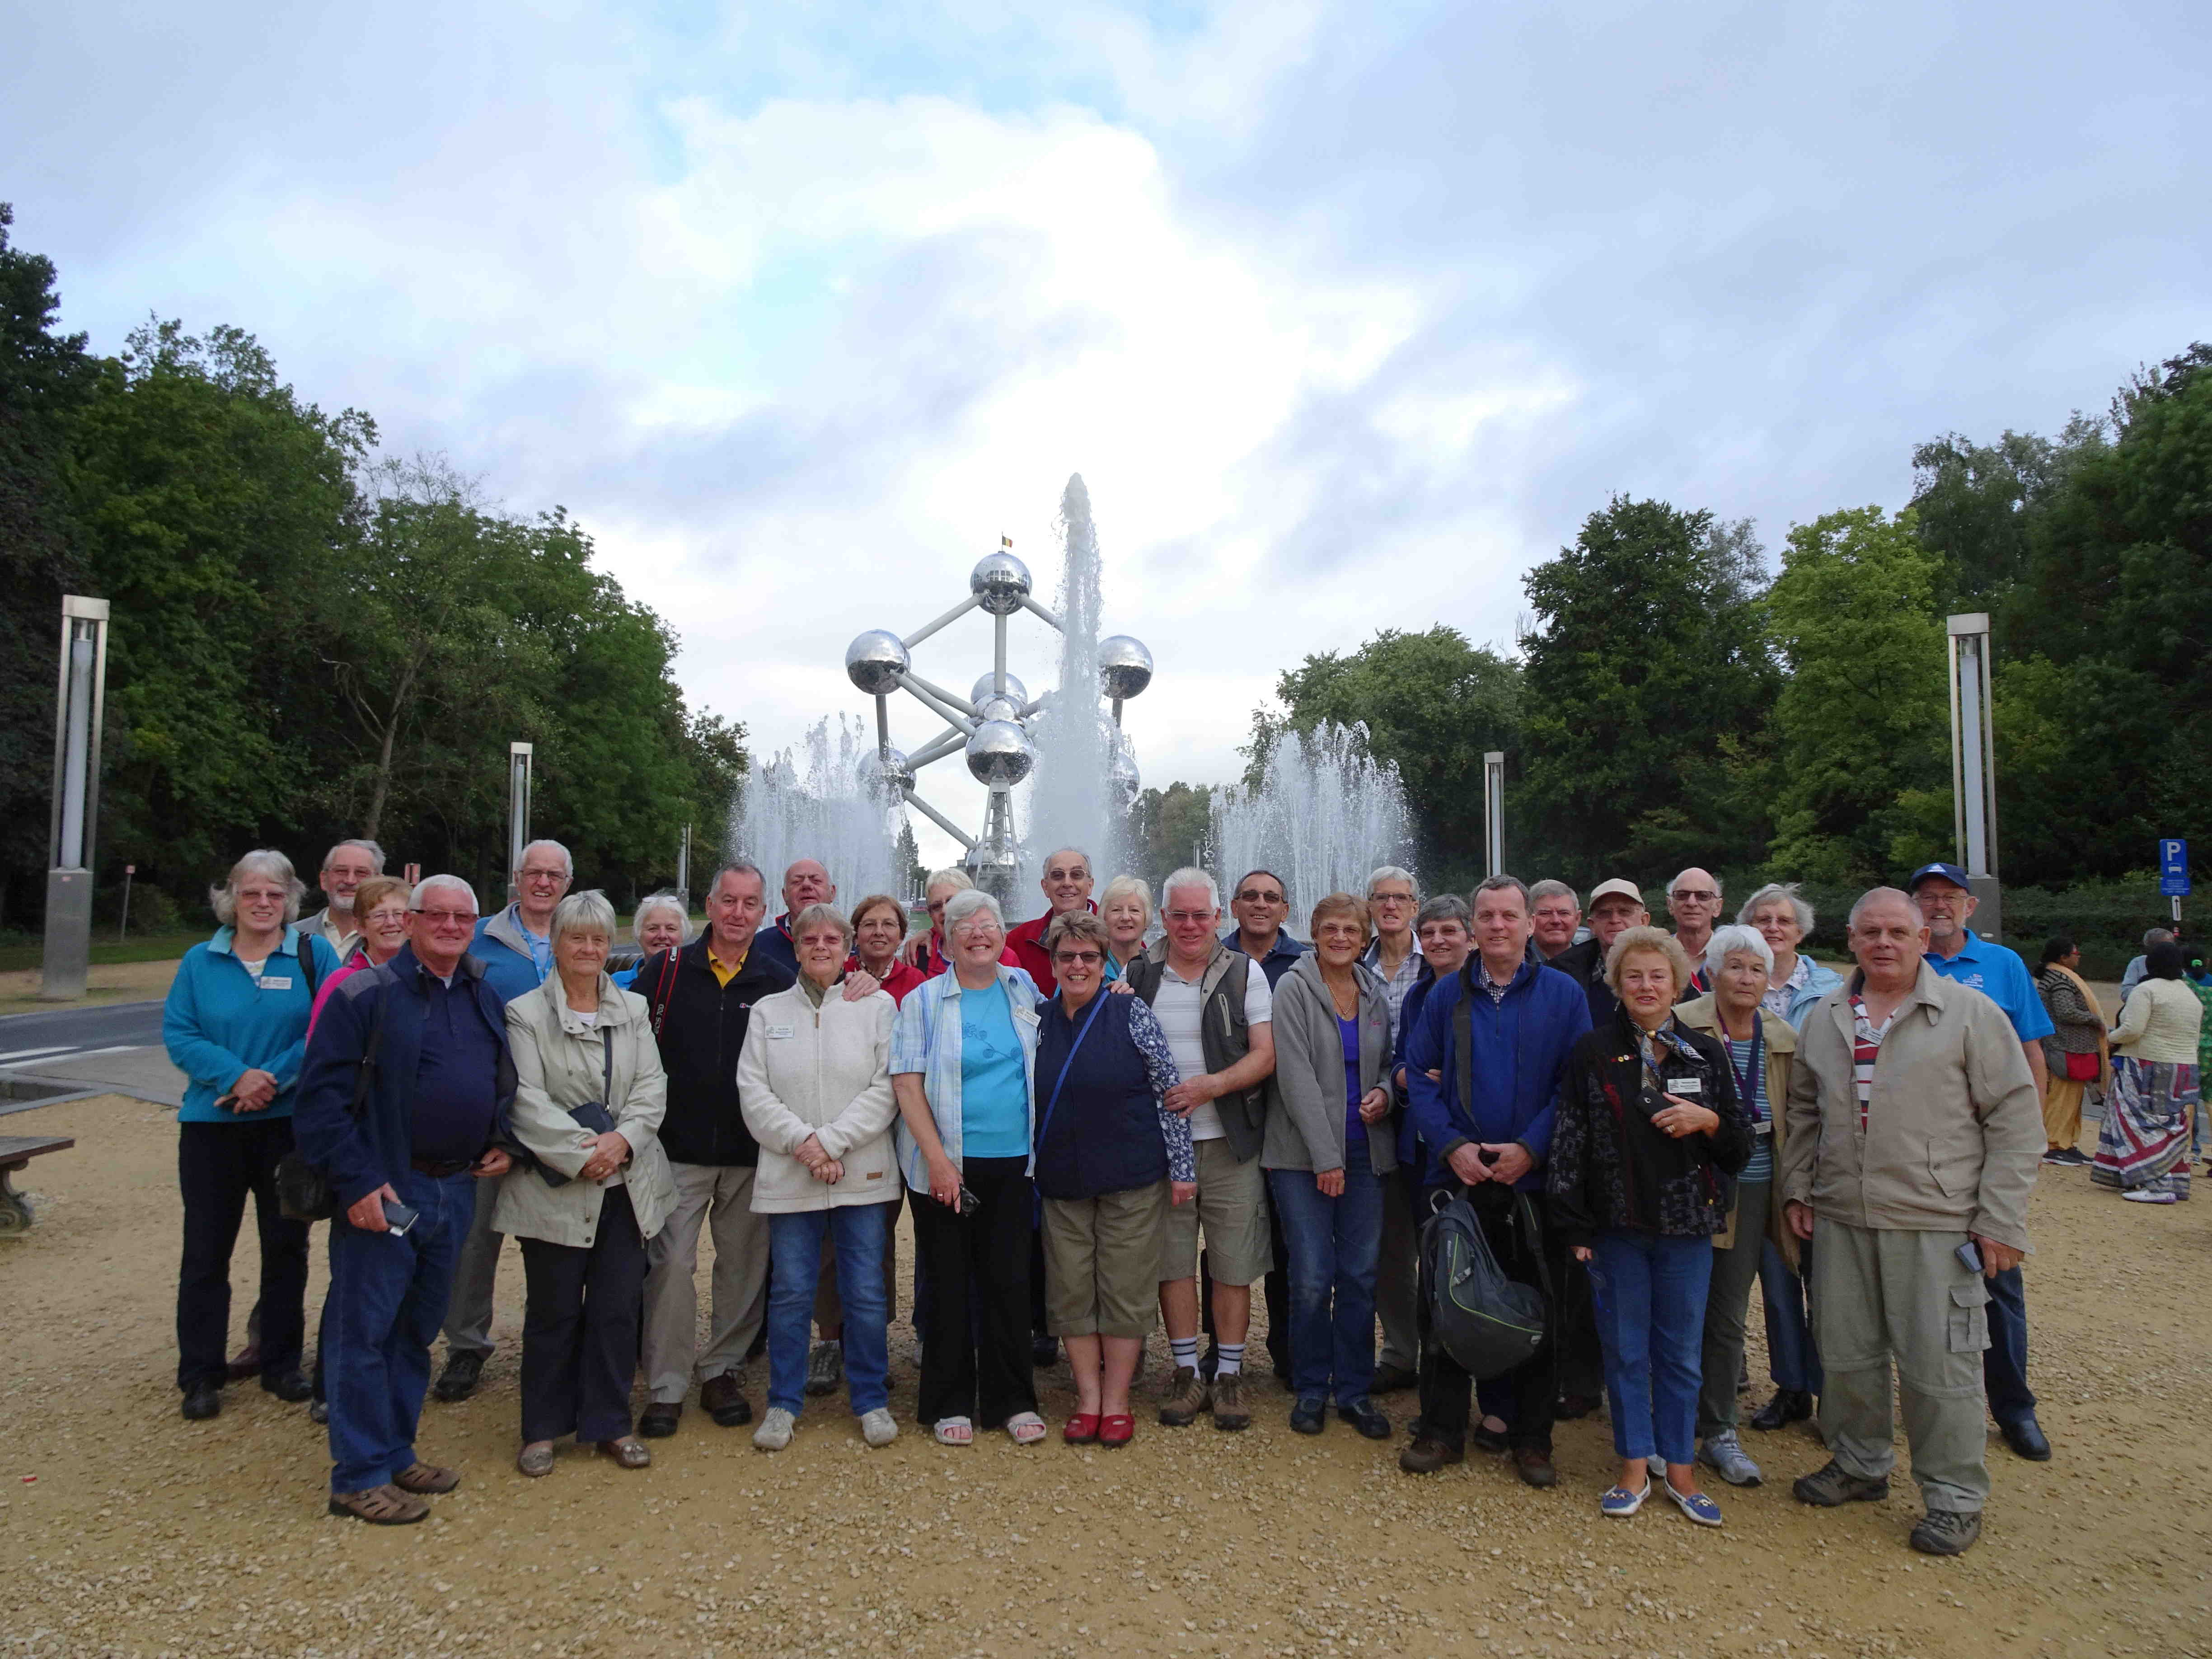 Group at The Atomium, Brussels 2015